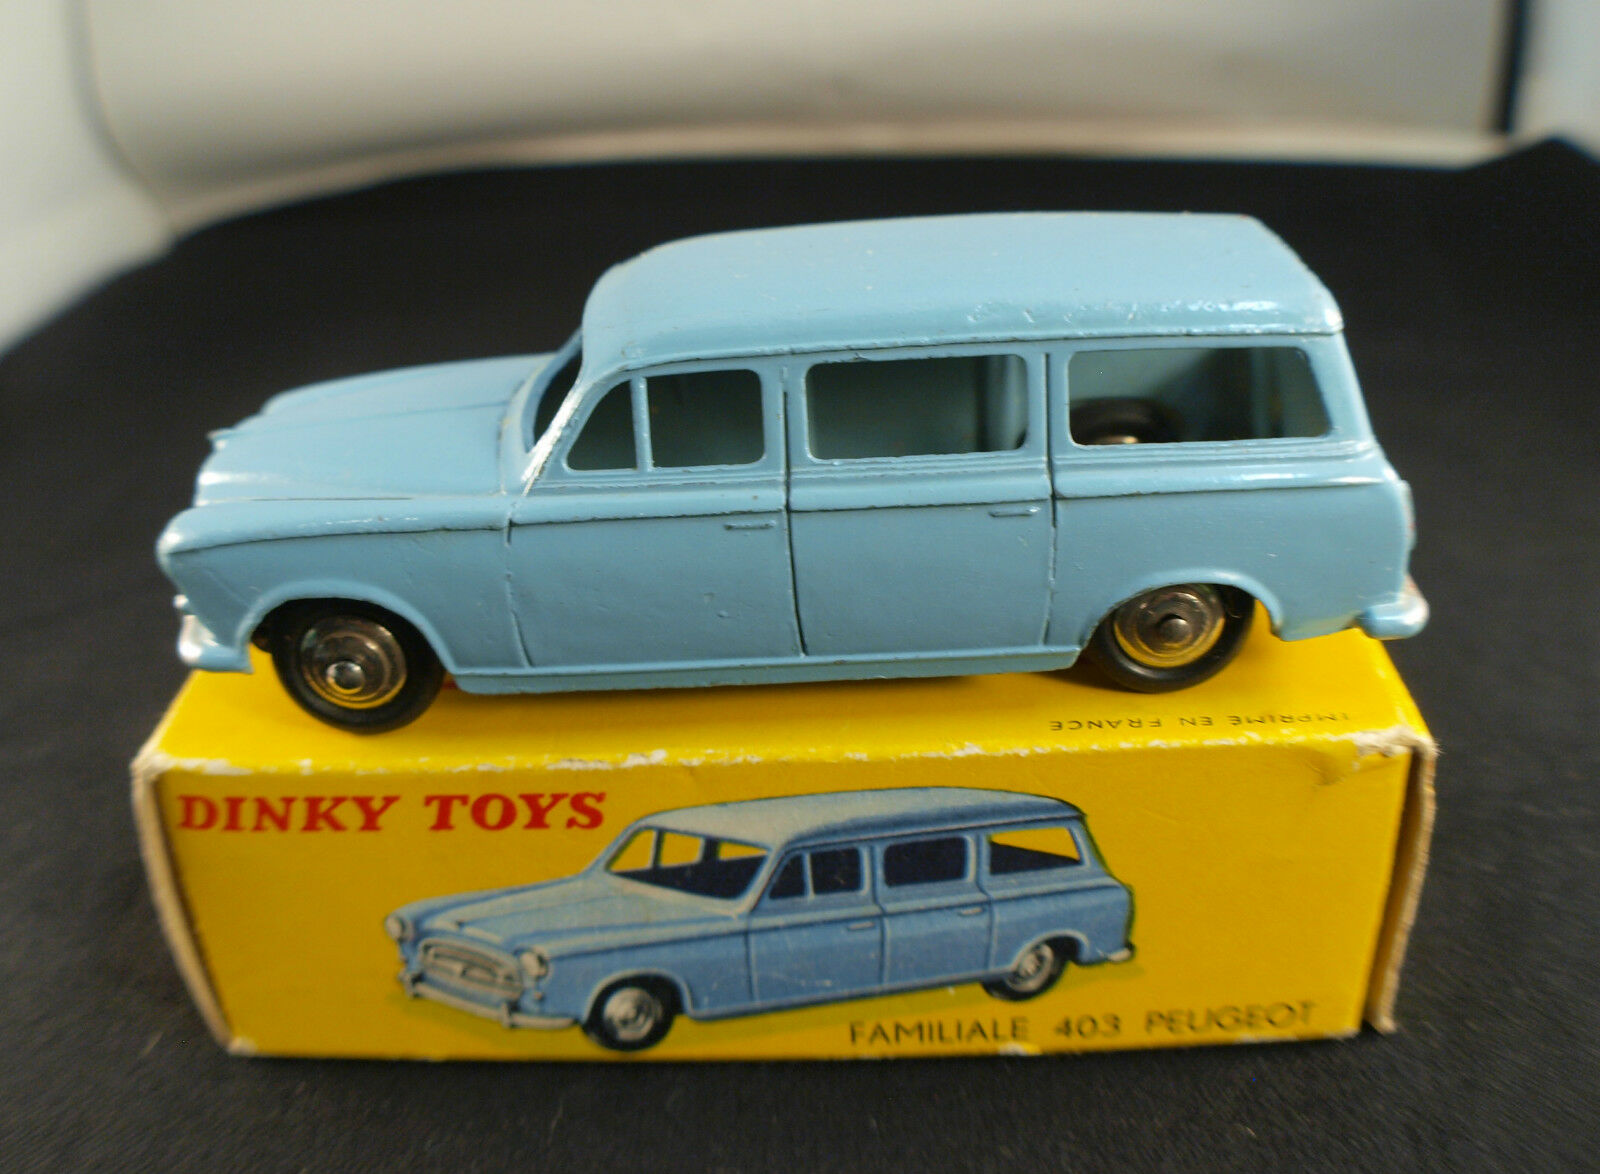 Dinky Toys F No. 24f Peugeot 403 Family Break in Box